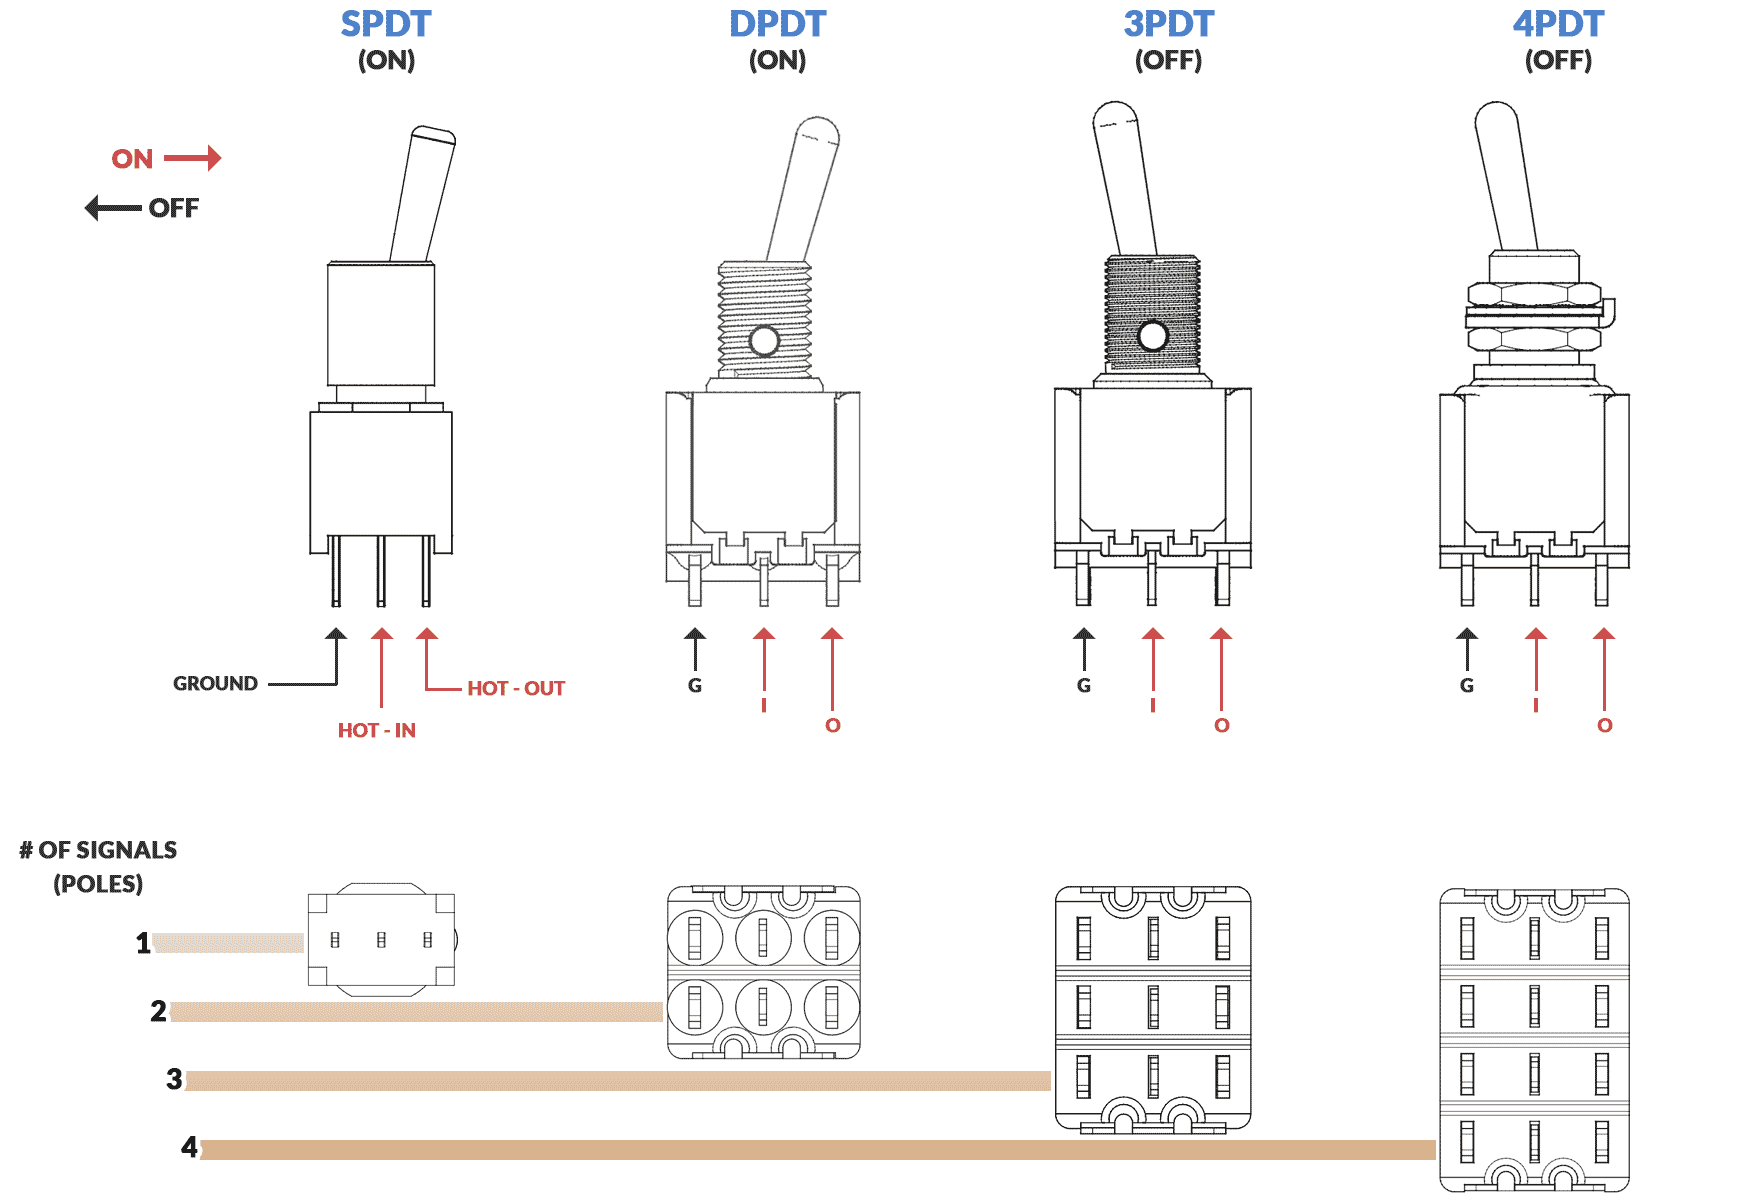 A breakdown of how SPDT, DPDT, 3PDT, and 4PDT switches function, and